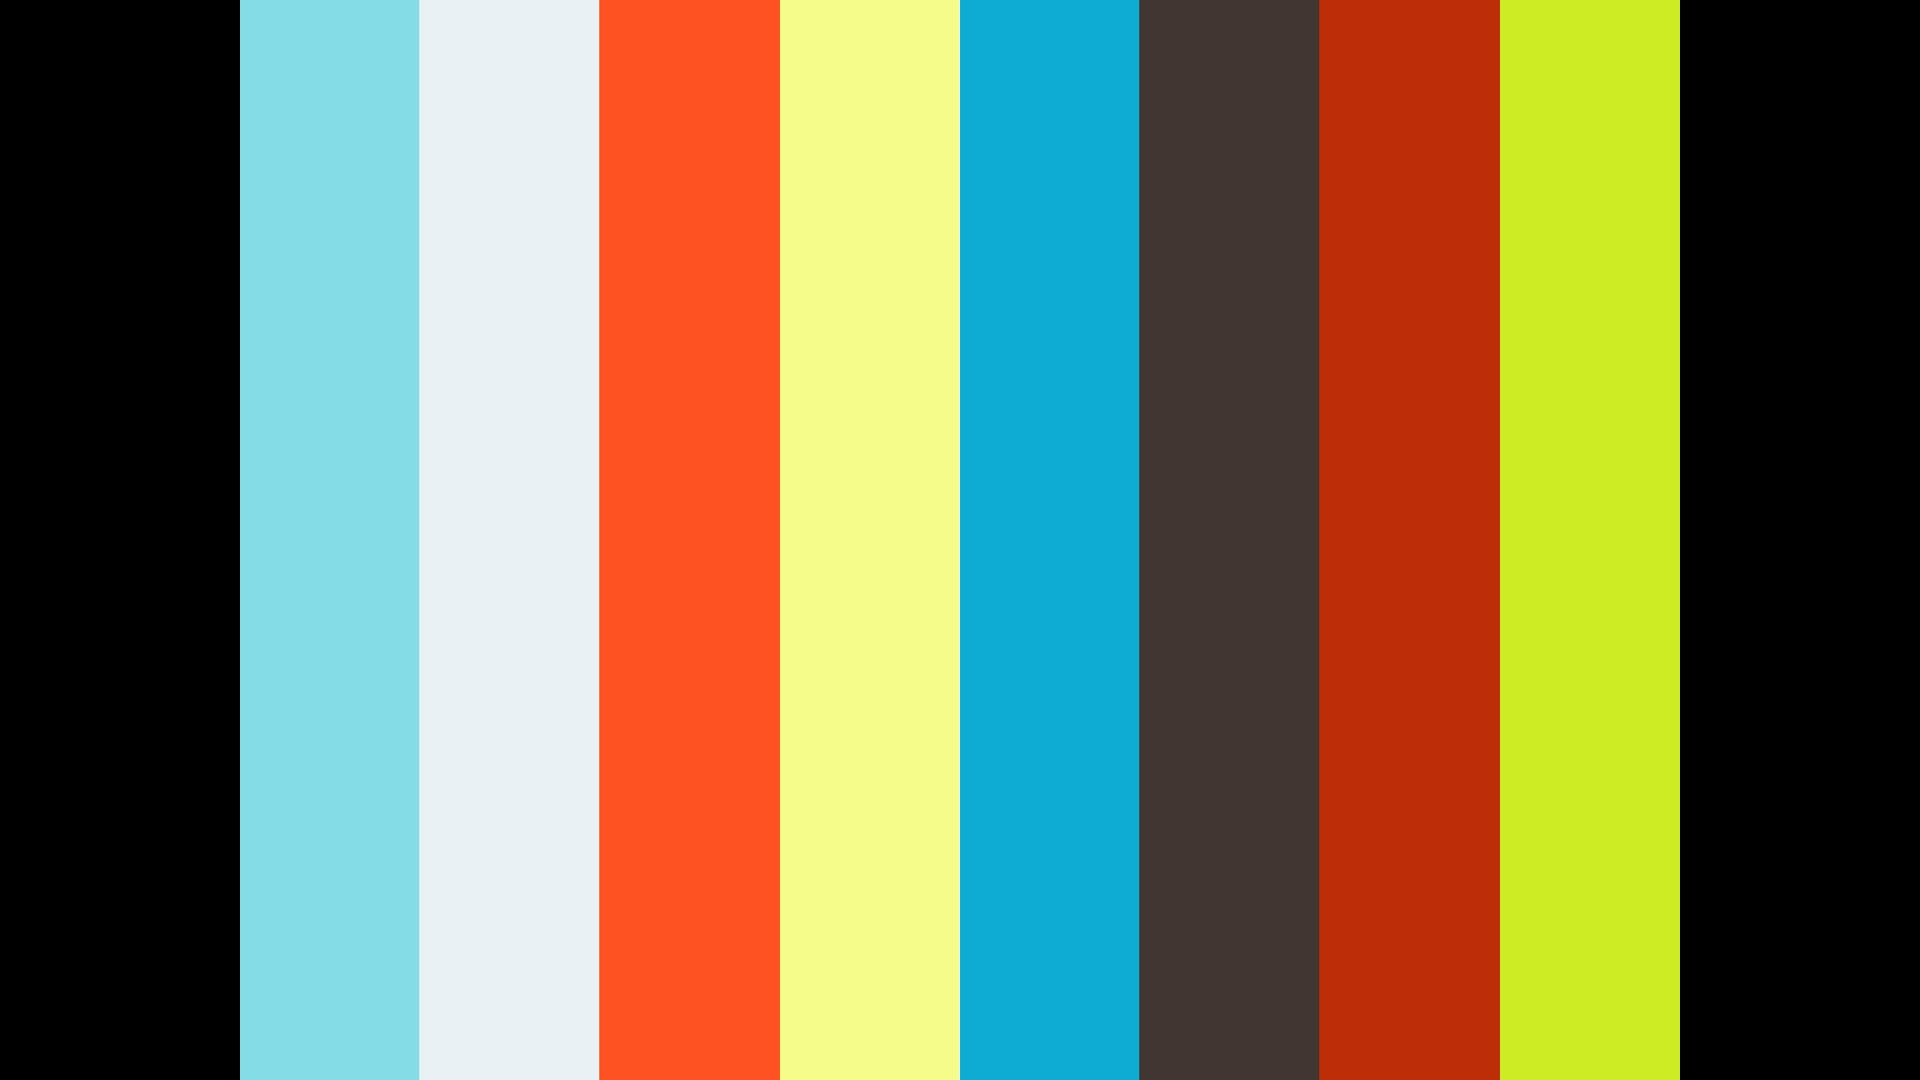 GoldMine Working Remotely - April 16, 2020